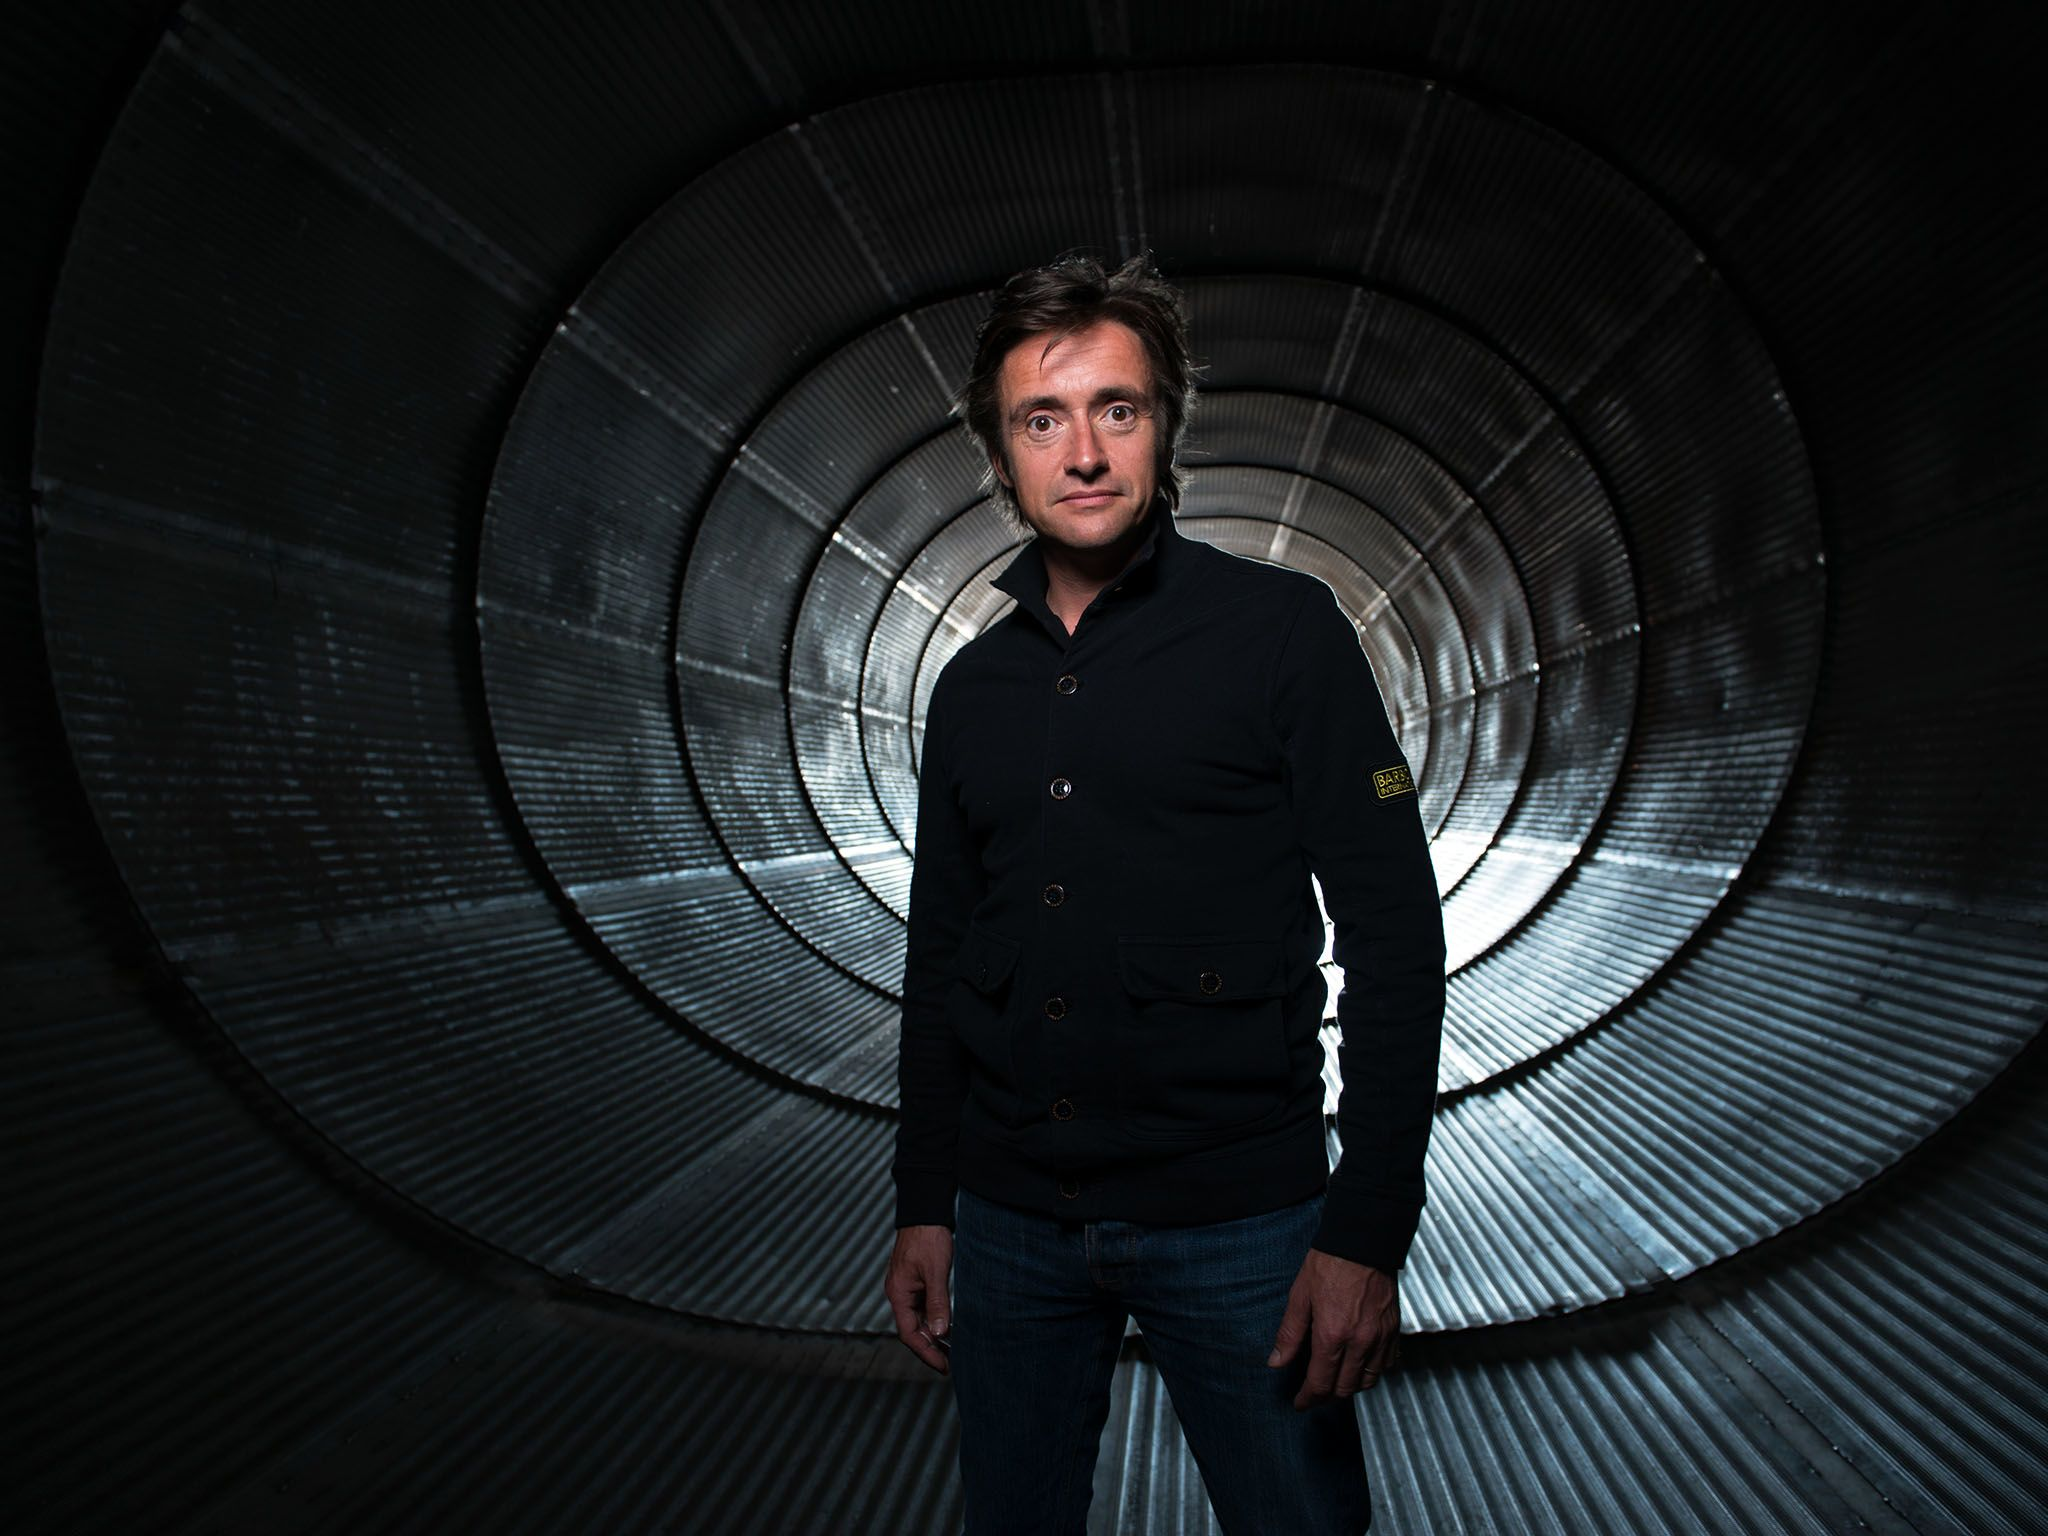 Host Richard Hammond. This image is from Richard Hammond's Wildest Weather. [Photo of the day - اگوست 2015]